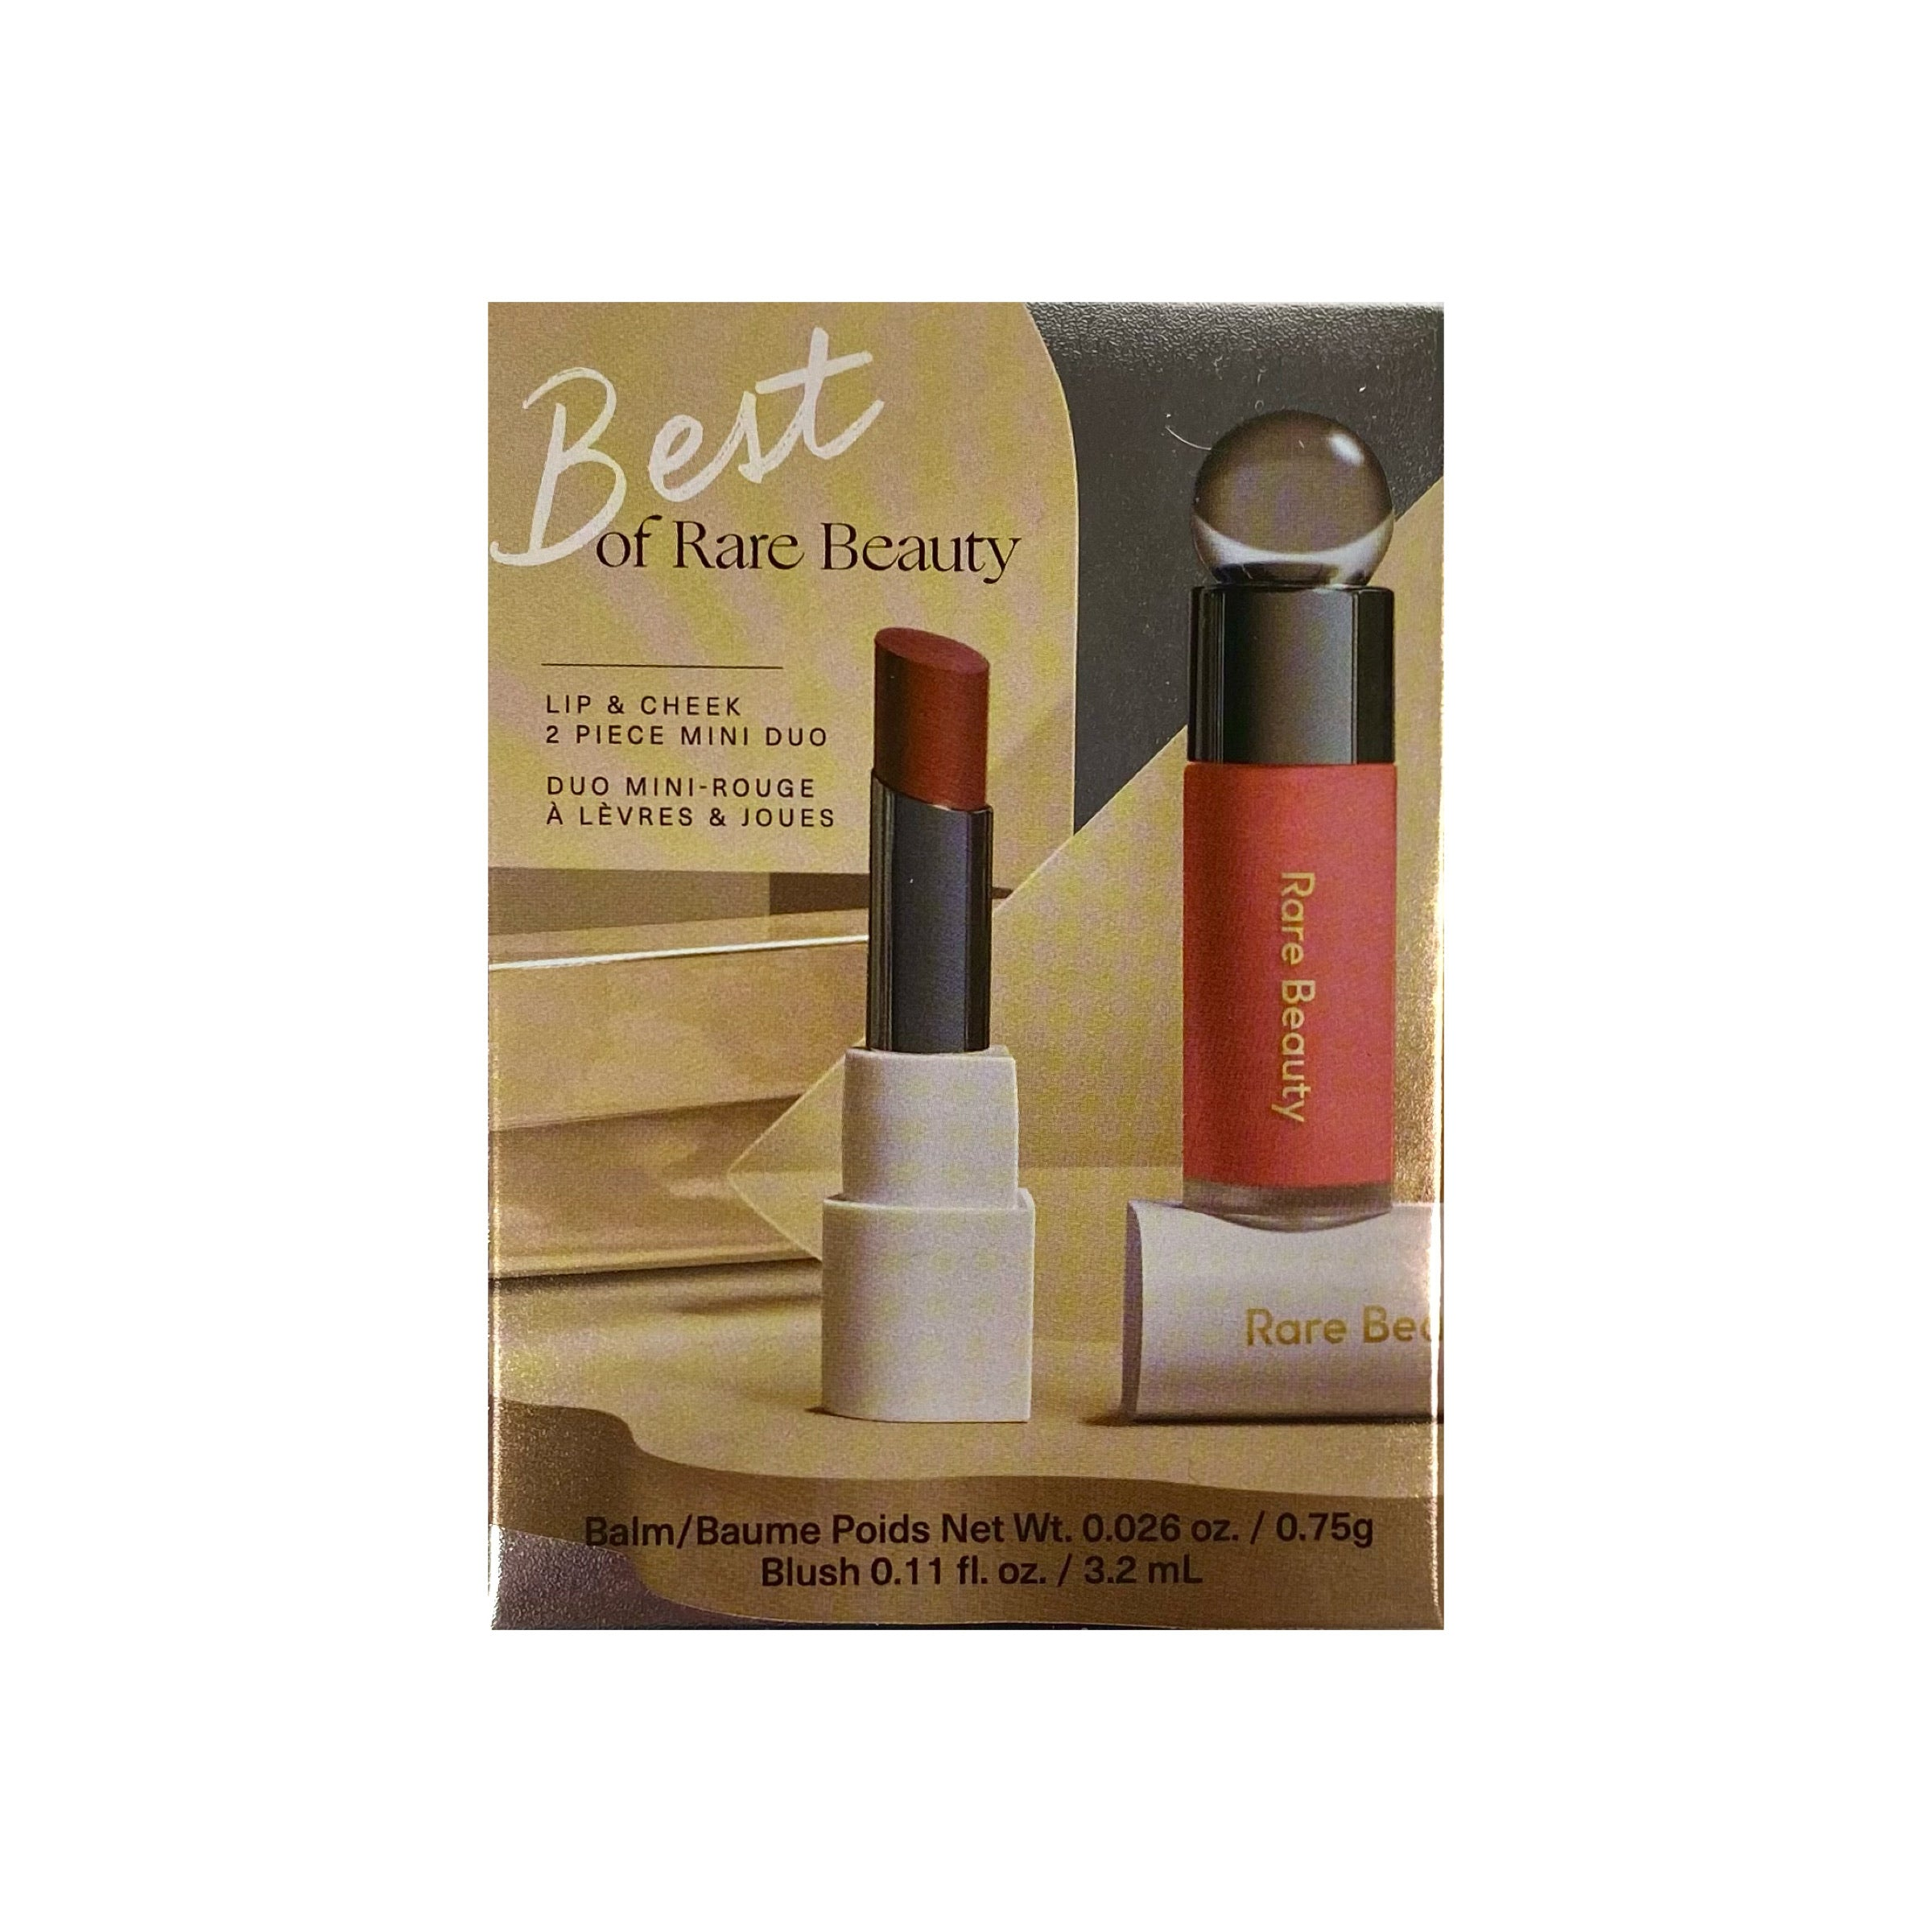 Rare Beauty by Selena Gomez Best of Rare Beauty Lip & Cheek Mini Duo